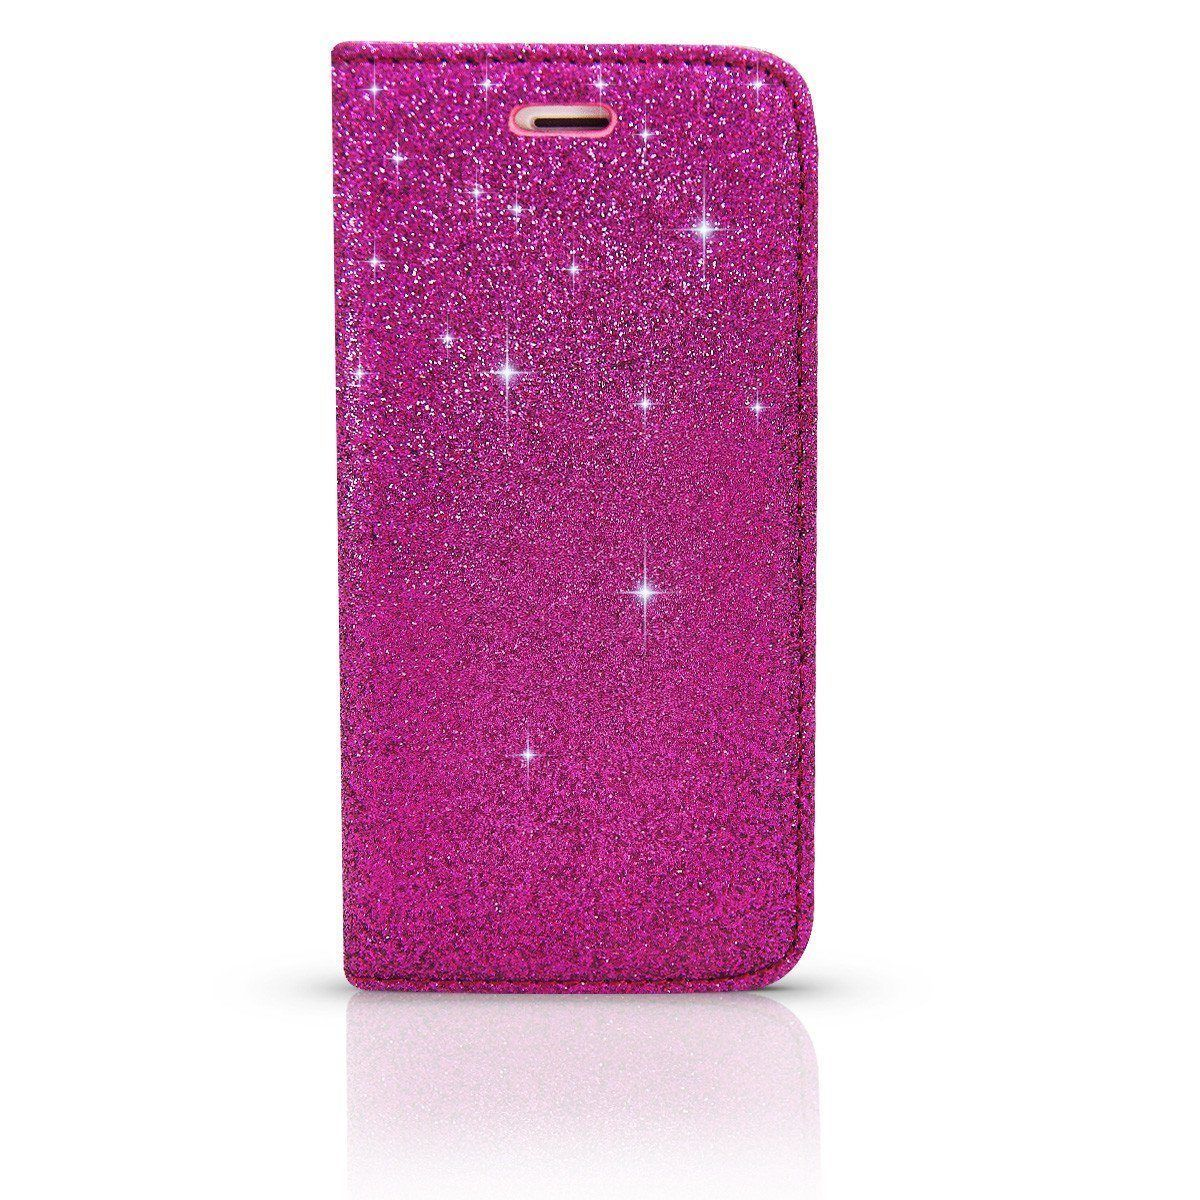 Shiny Wallet Case for i6P - Hot Pink